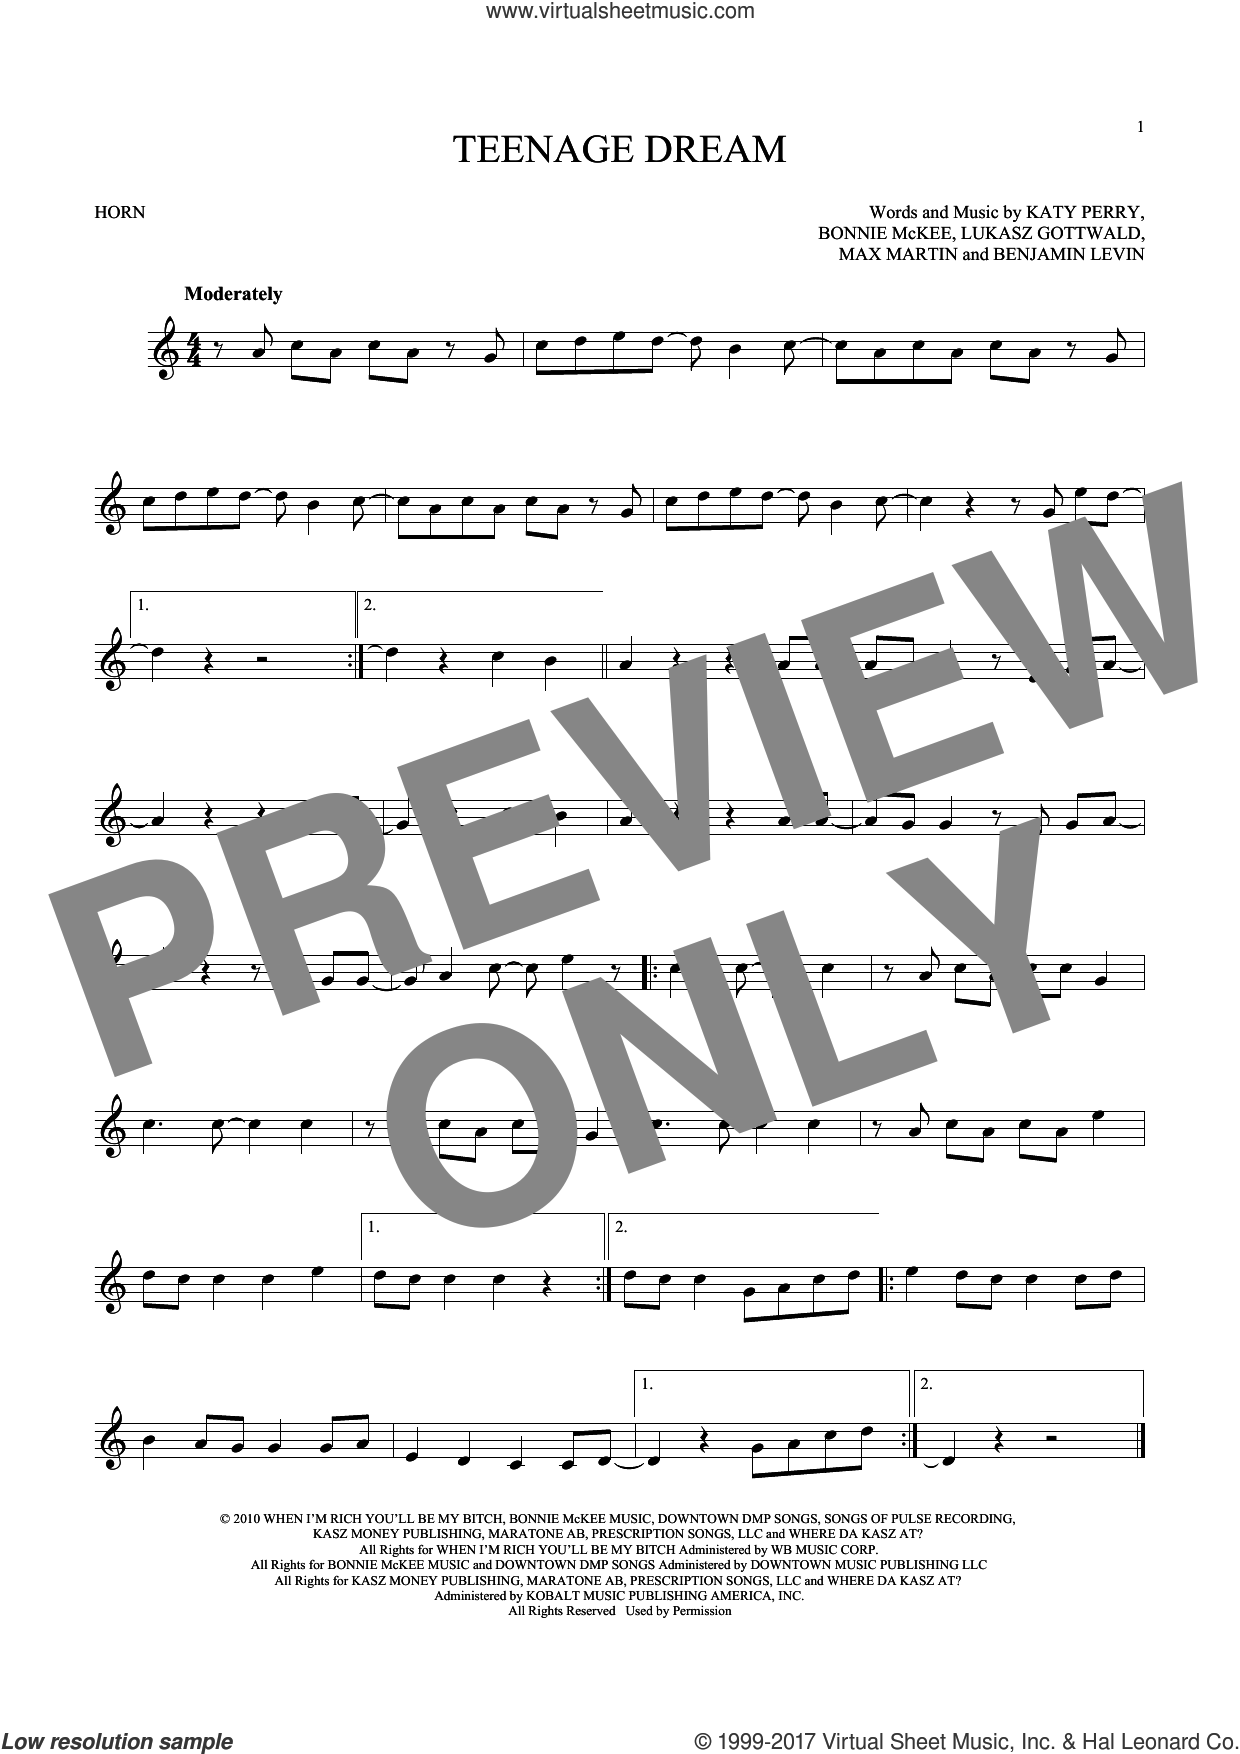 Teenage Dream sheet music for horn solo by Katy Perry, Benjamin Levin, Bonnie McKee, Lukasz Gottwald and Max Martin. Score Image Preview.